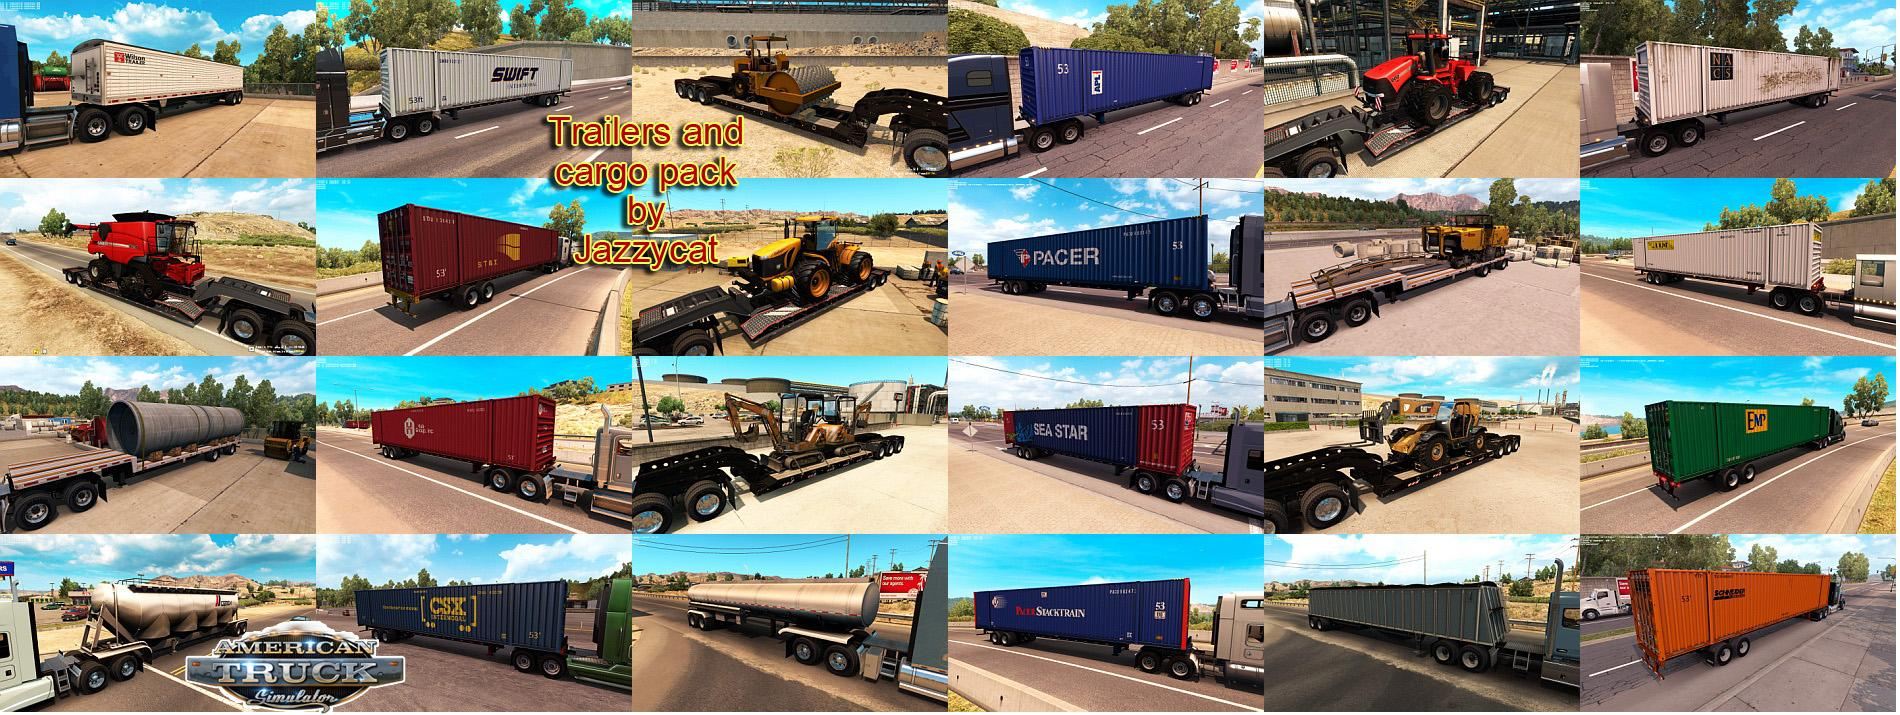 Trailers and cargo pack v1.2 by Jazzycat for ATS